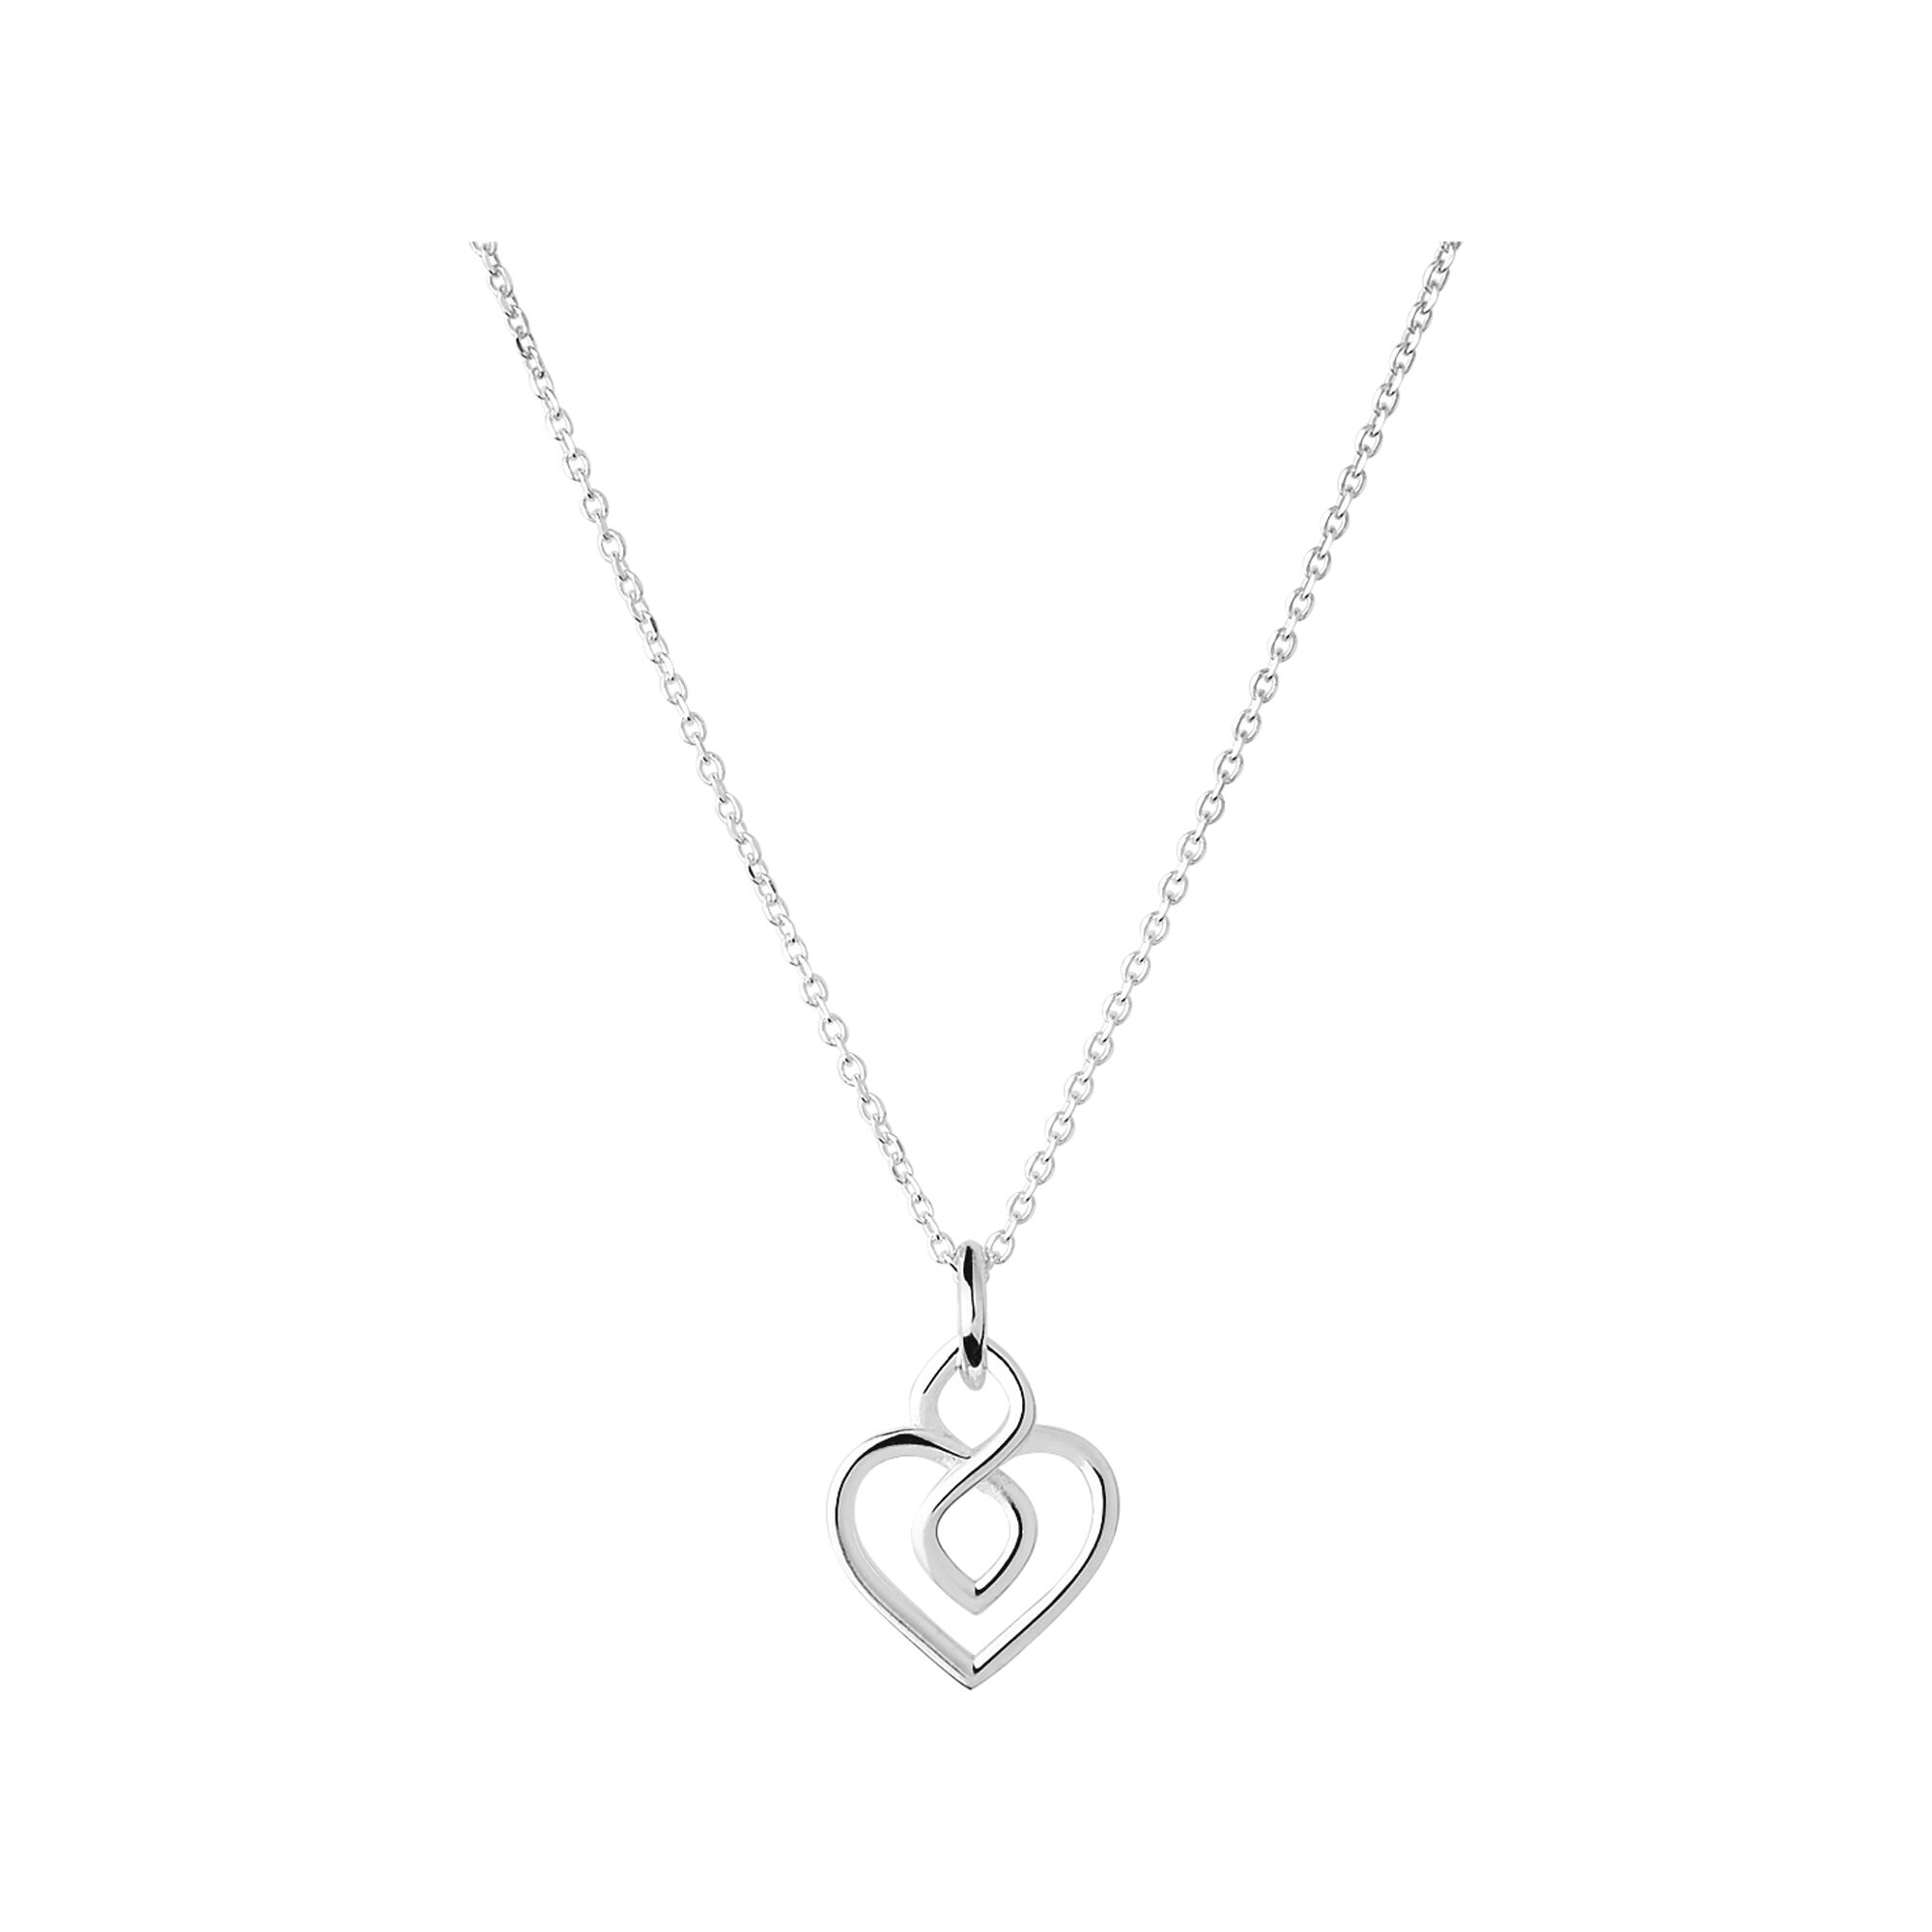 jewellery size necklace love view jewelry mini os necklaces heart alternate pure product